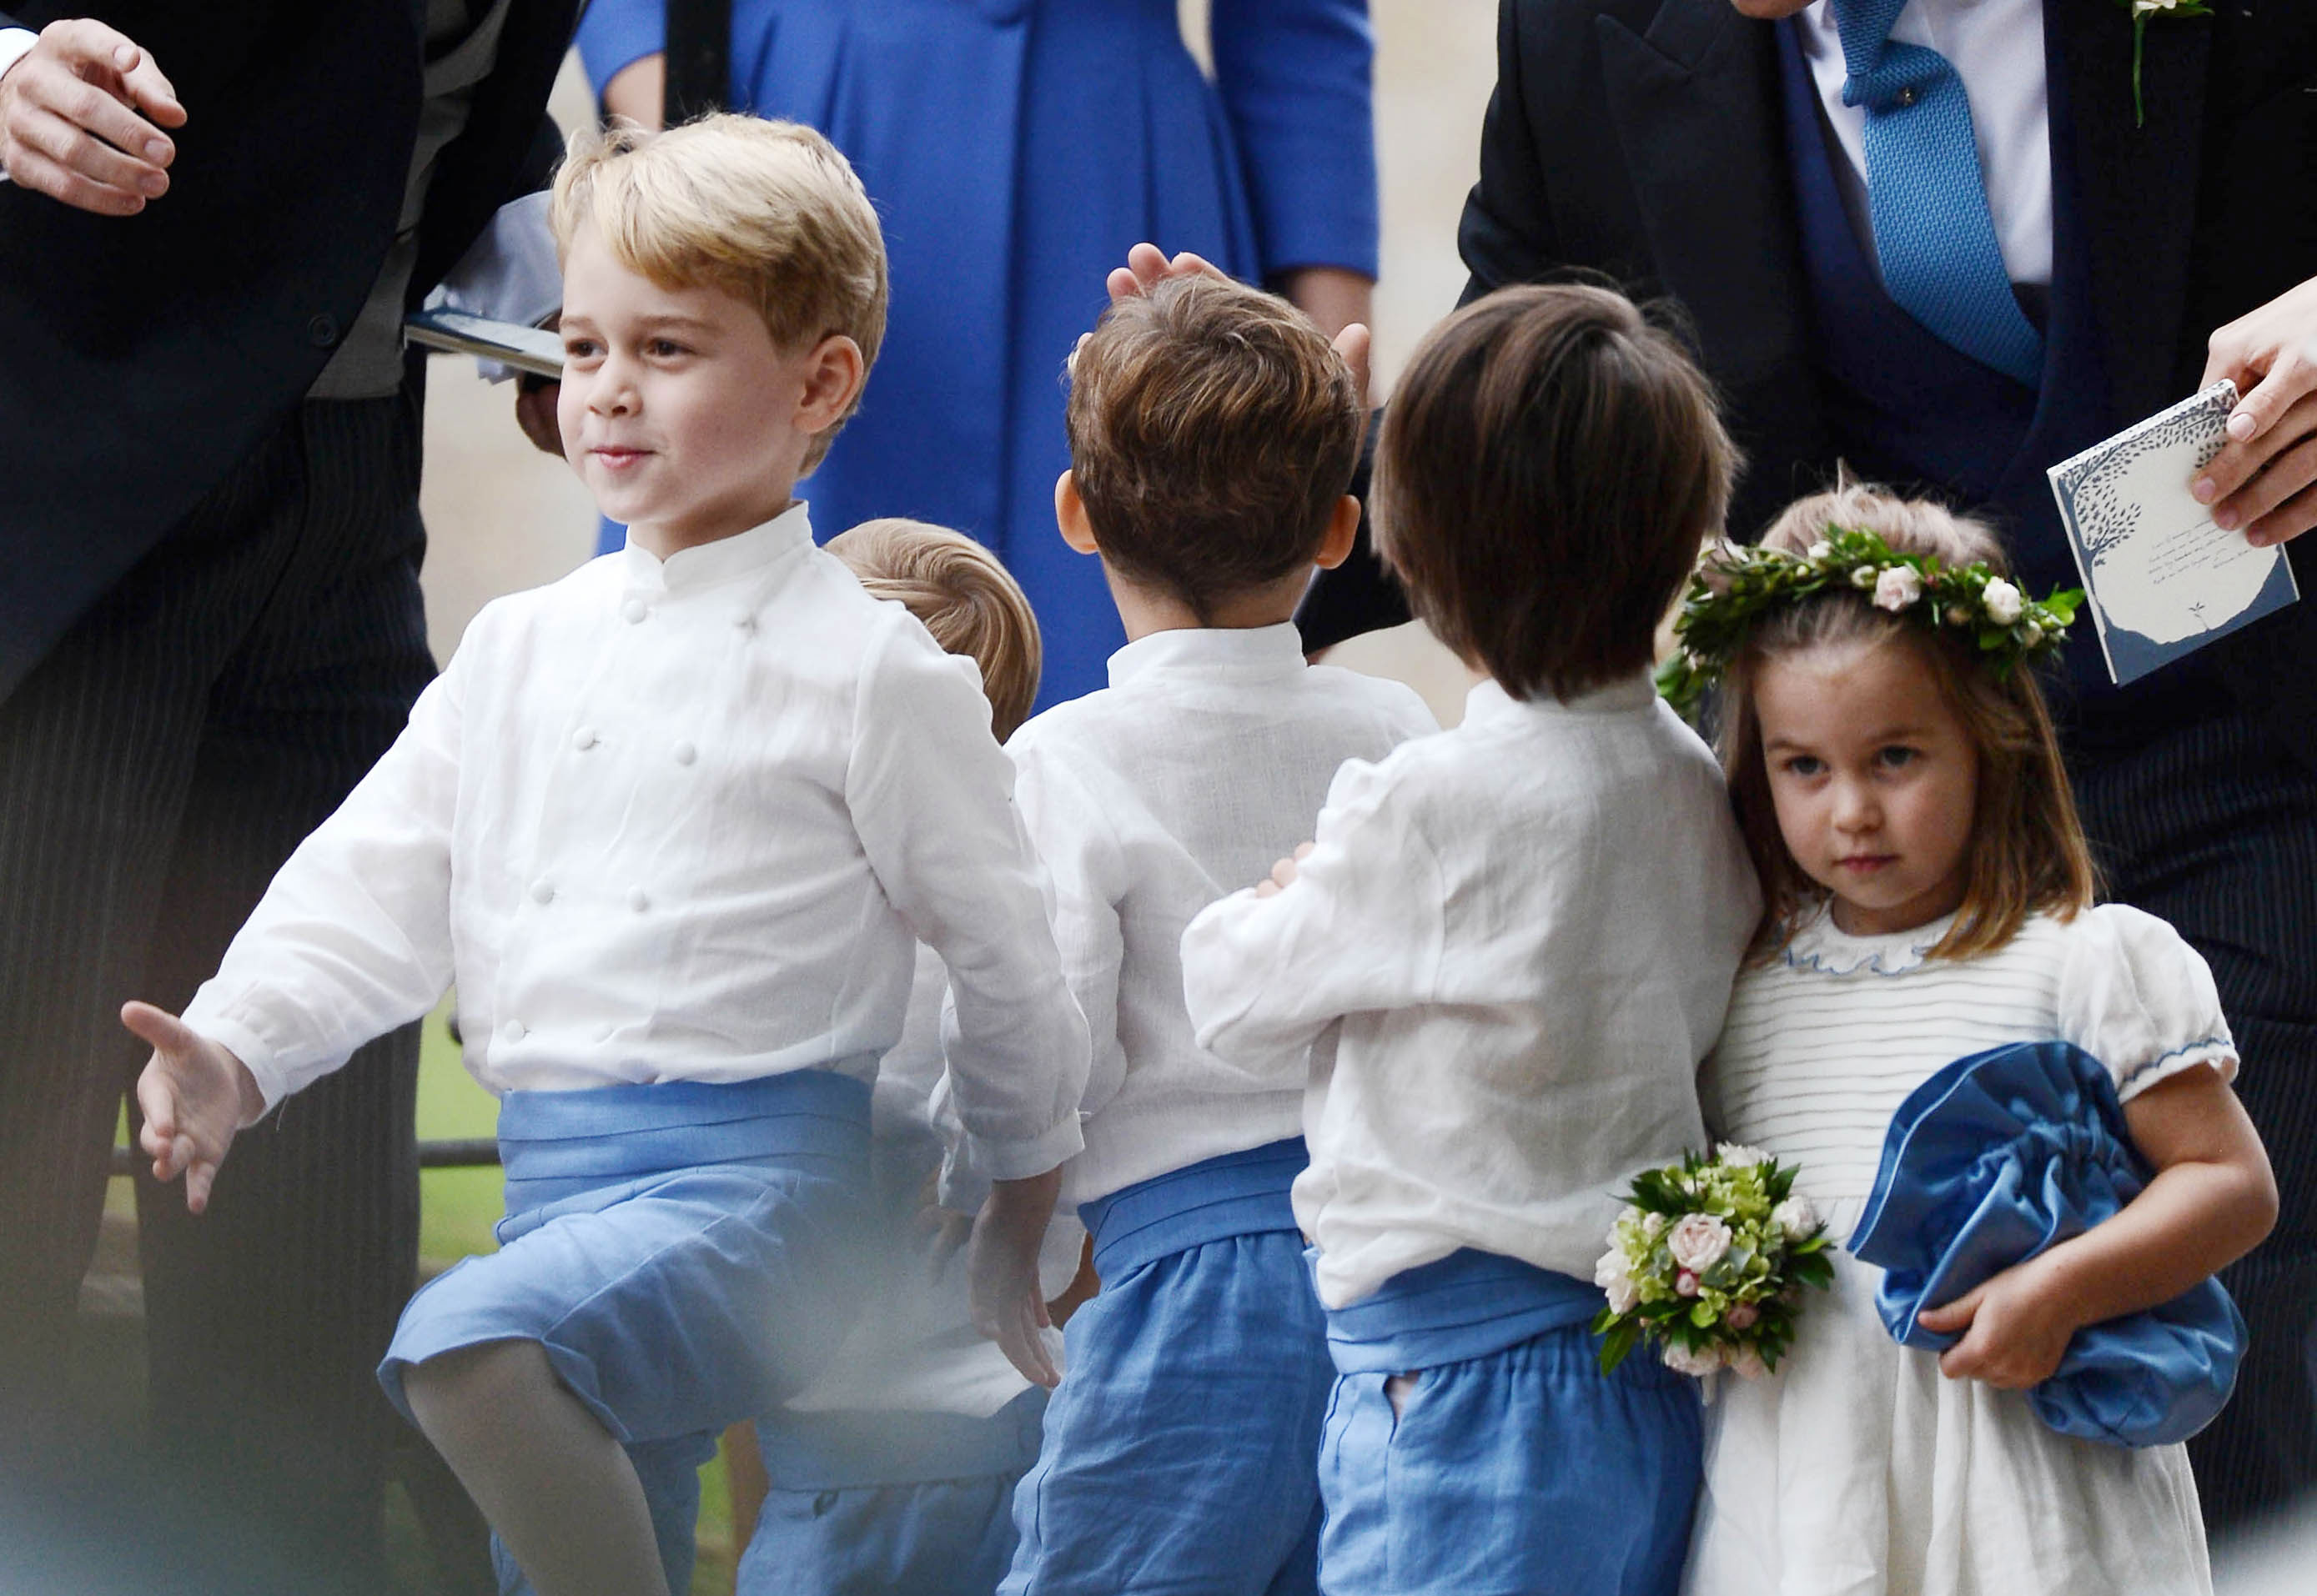 Prince George and Princess Charlotte Were in Another Wedding